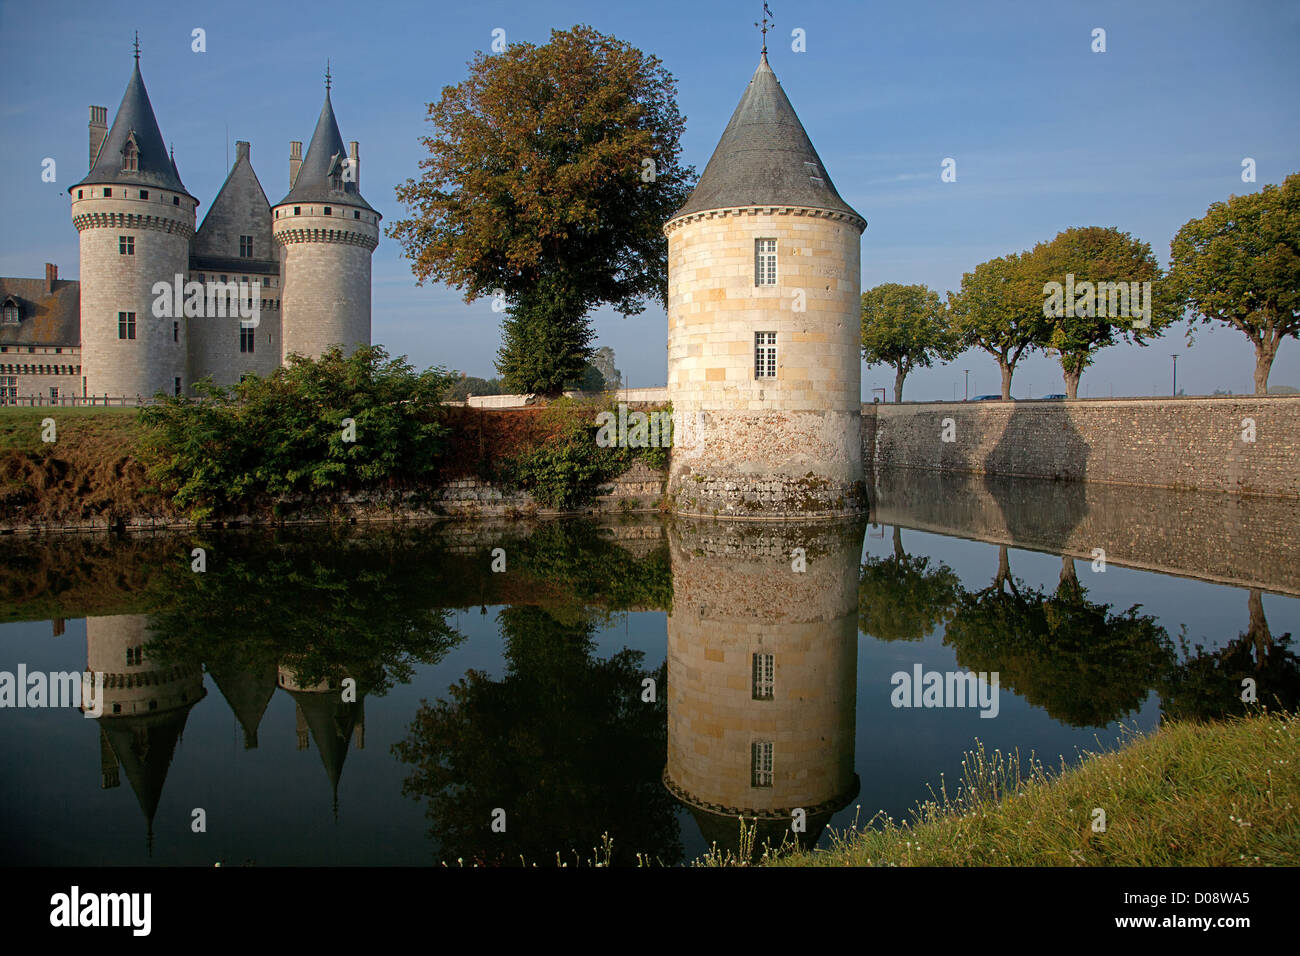 MOATS AND THE RENAISSANCE CHATEAU OF SULLY-SUR-LOIRE IN THE EARLY MORNING LOIRET (45) FRANCE - Stock Image